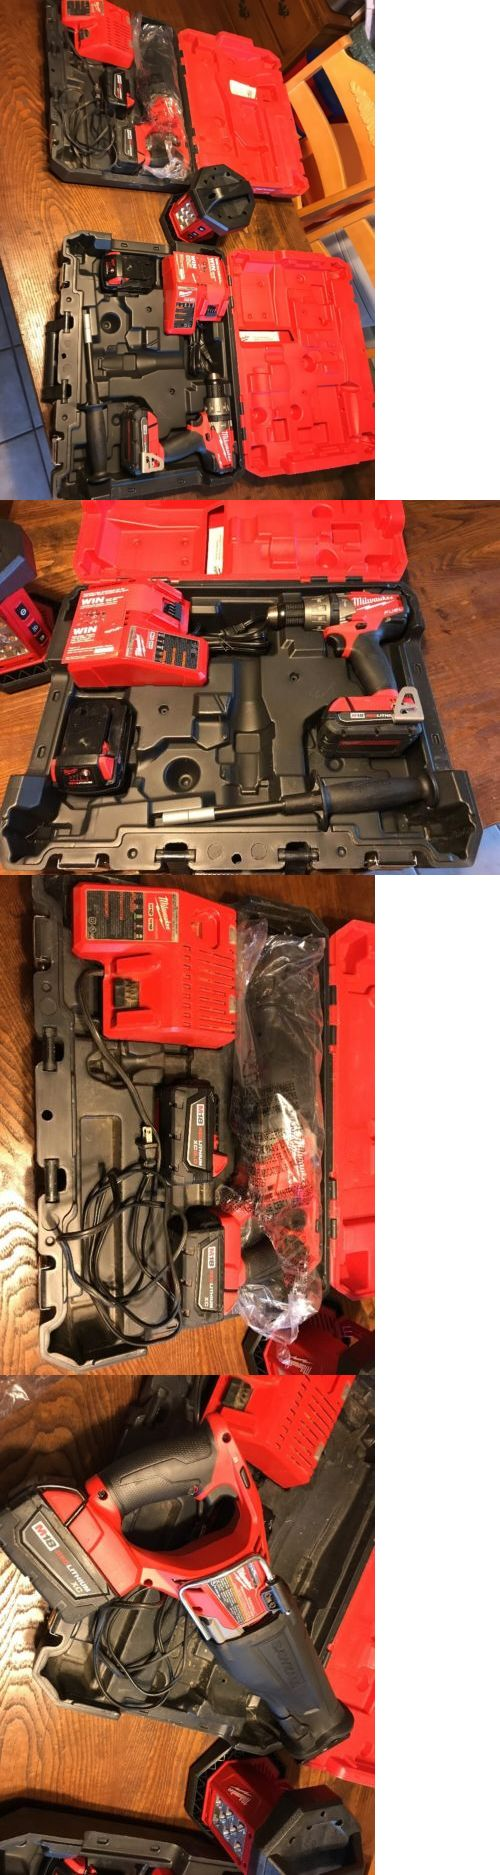 Combination Sets 177000: New Milwaukee M18 Red Lithium Xc Hammer Drill, Sawzall And Led Flood Light -> BUY IT NOW ONLY: $380 on eBay!